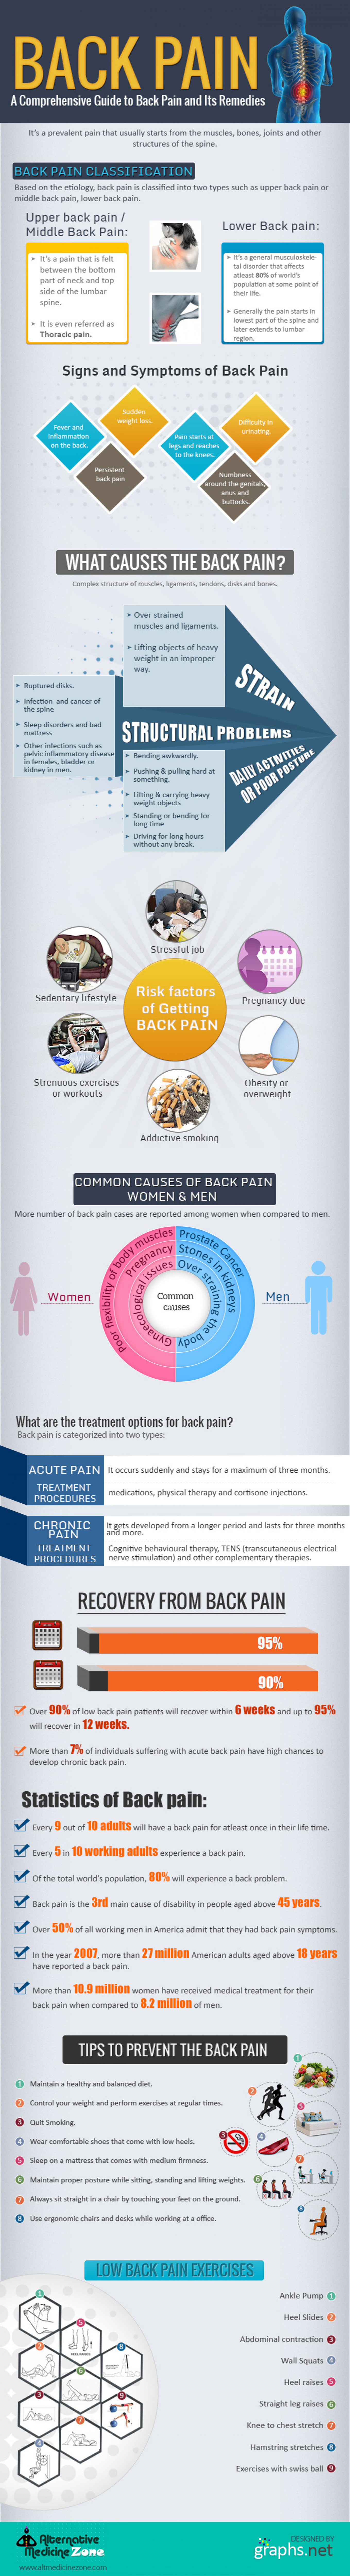 Back pain guide and its remedies Infographic